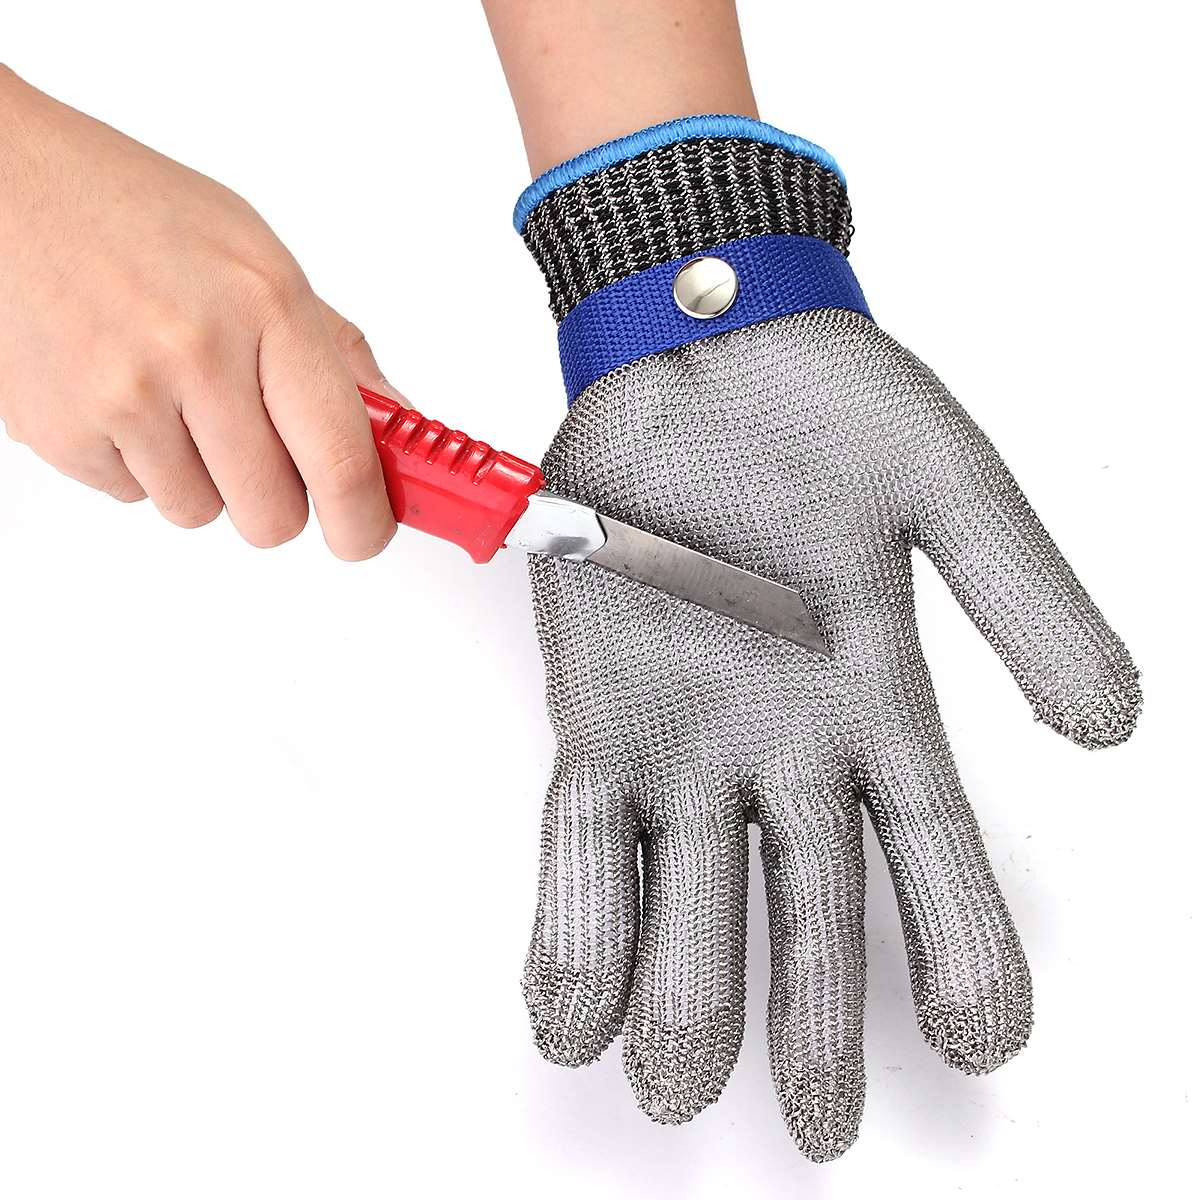 Size S Safety Cut Proof Stab Resistant Stainless Steel Wire Metal Mesh Glove High Performance Level 5 Protection 1pcs safety gloves cut proof stab resistant stainless steel wire metal mesh butcher anti knife